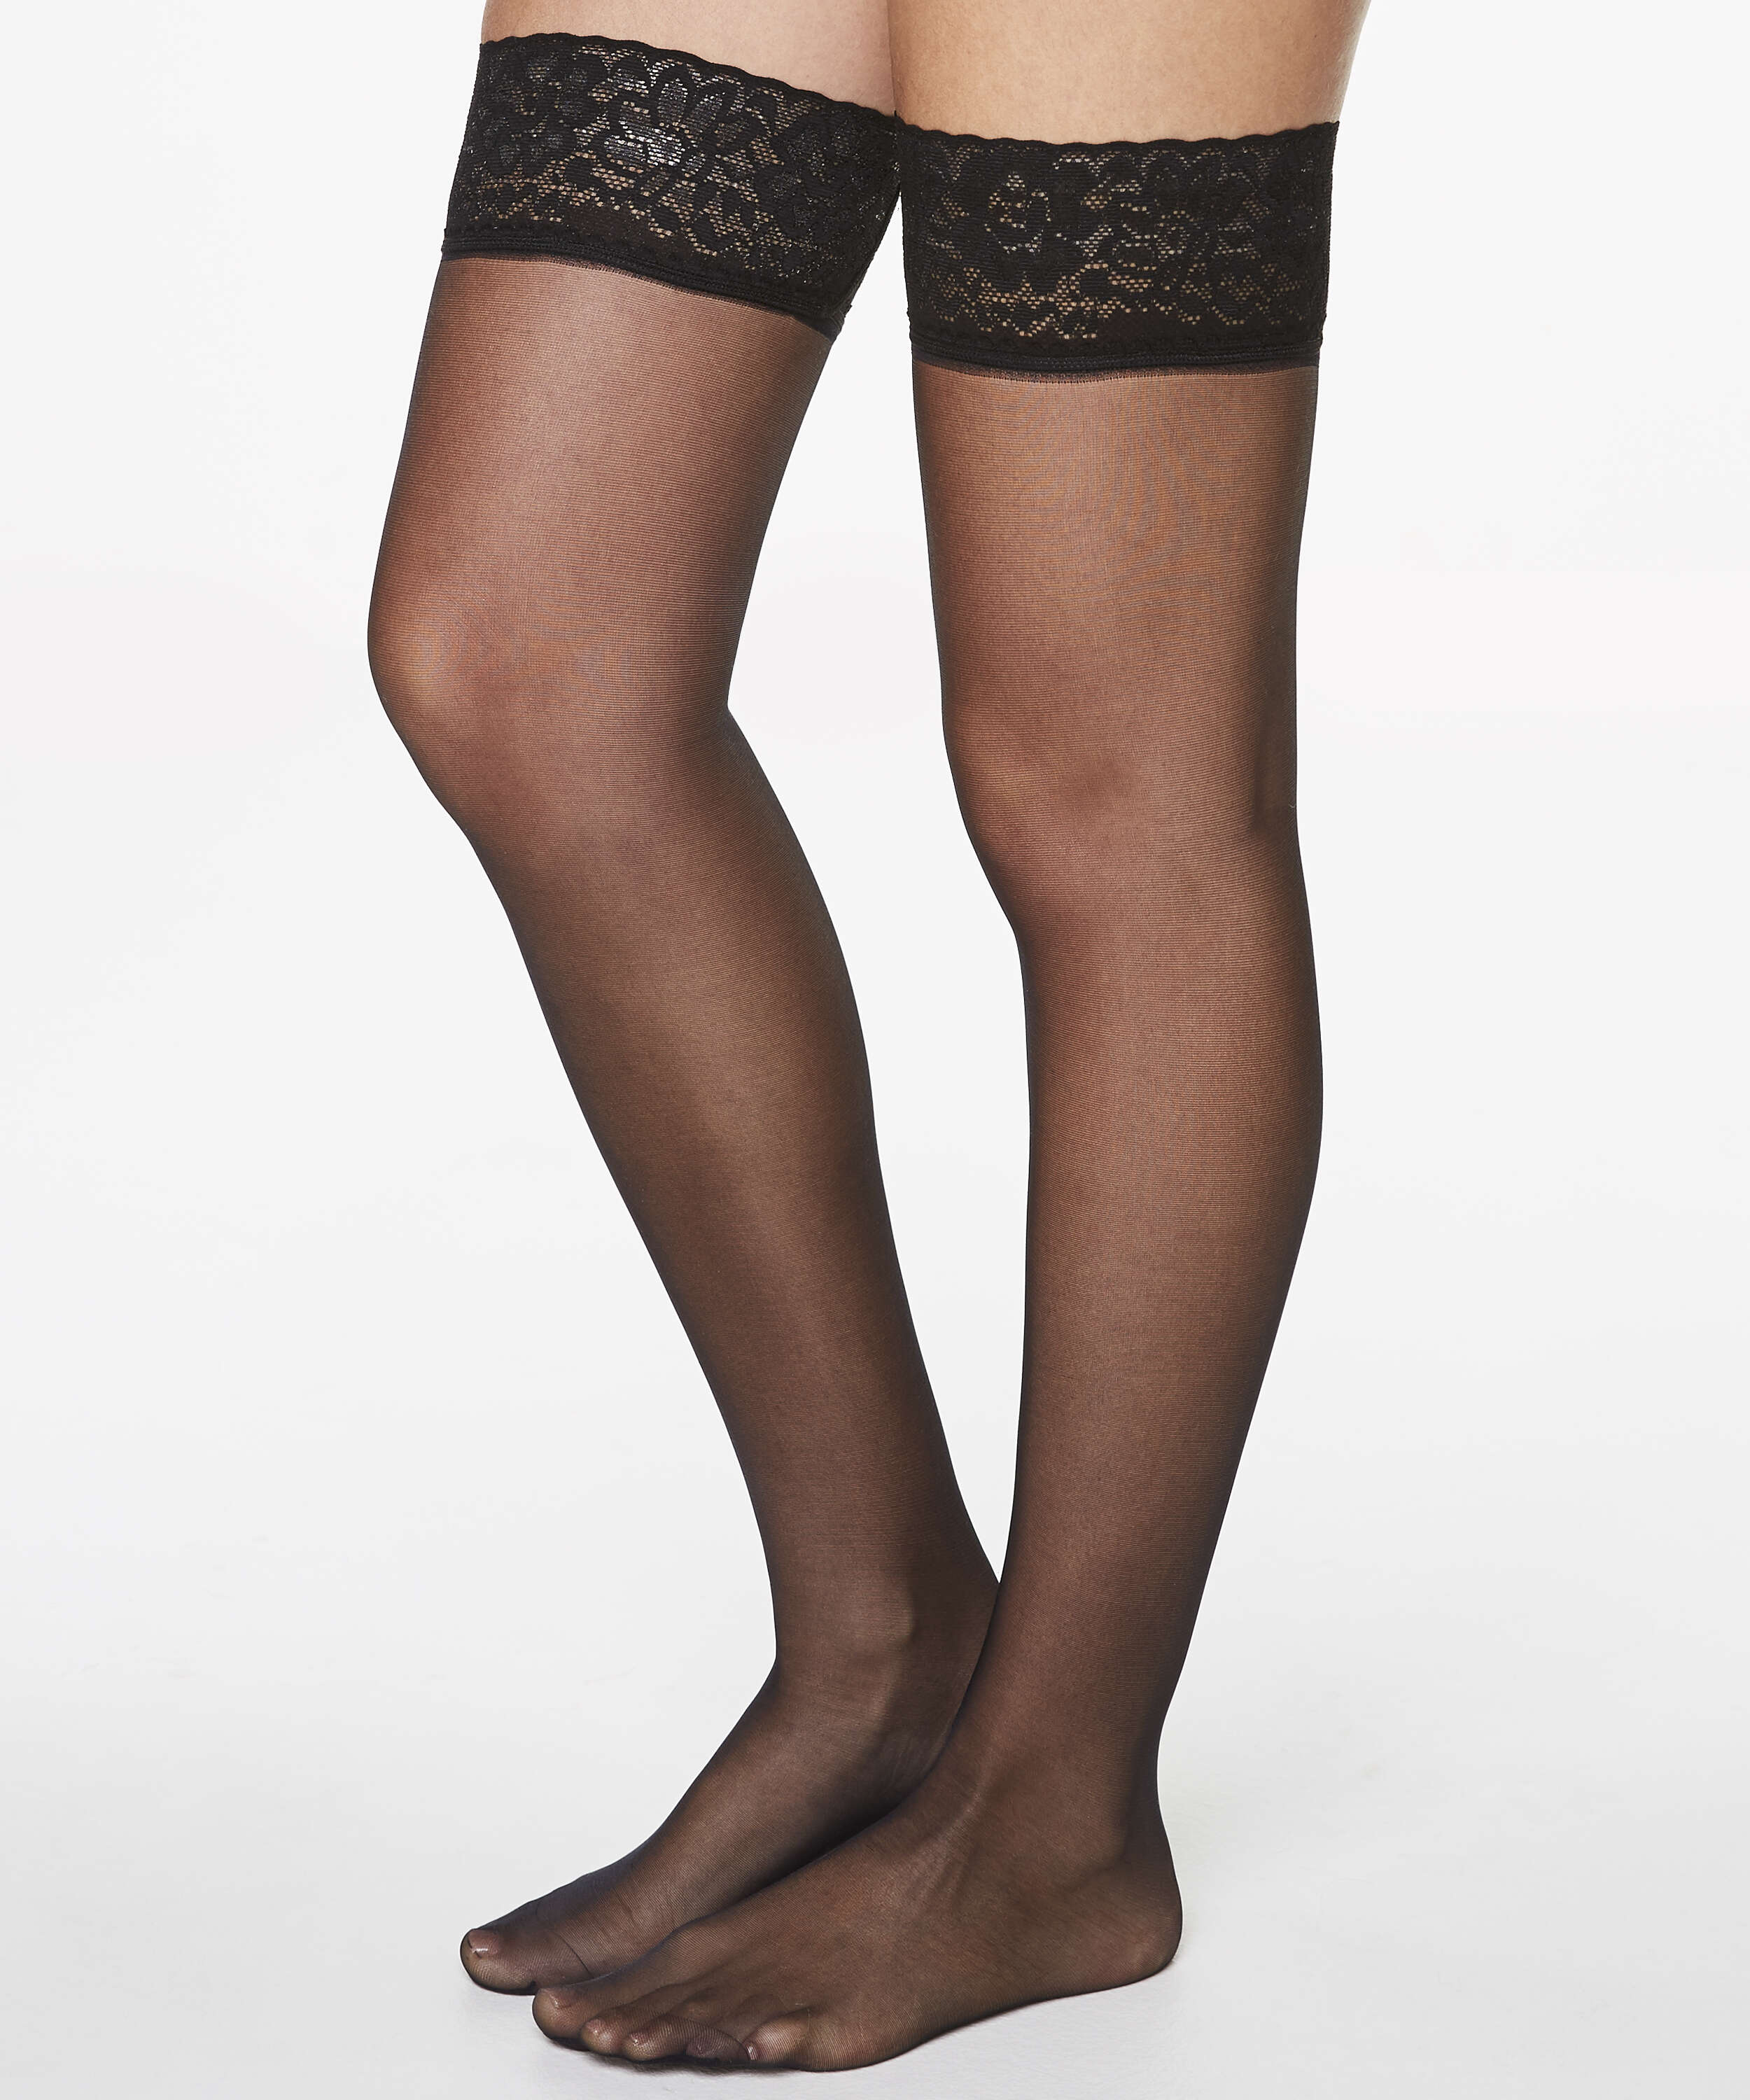 Stay-up 15 Denier Lace Anti Ladder, Black, main